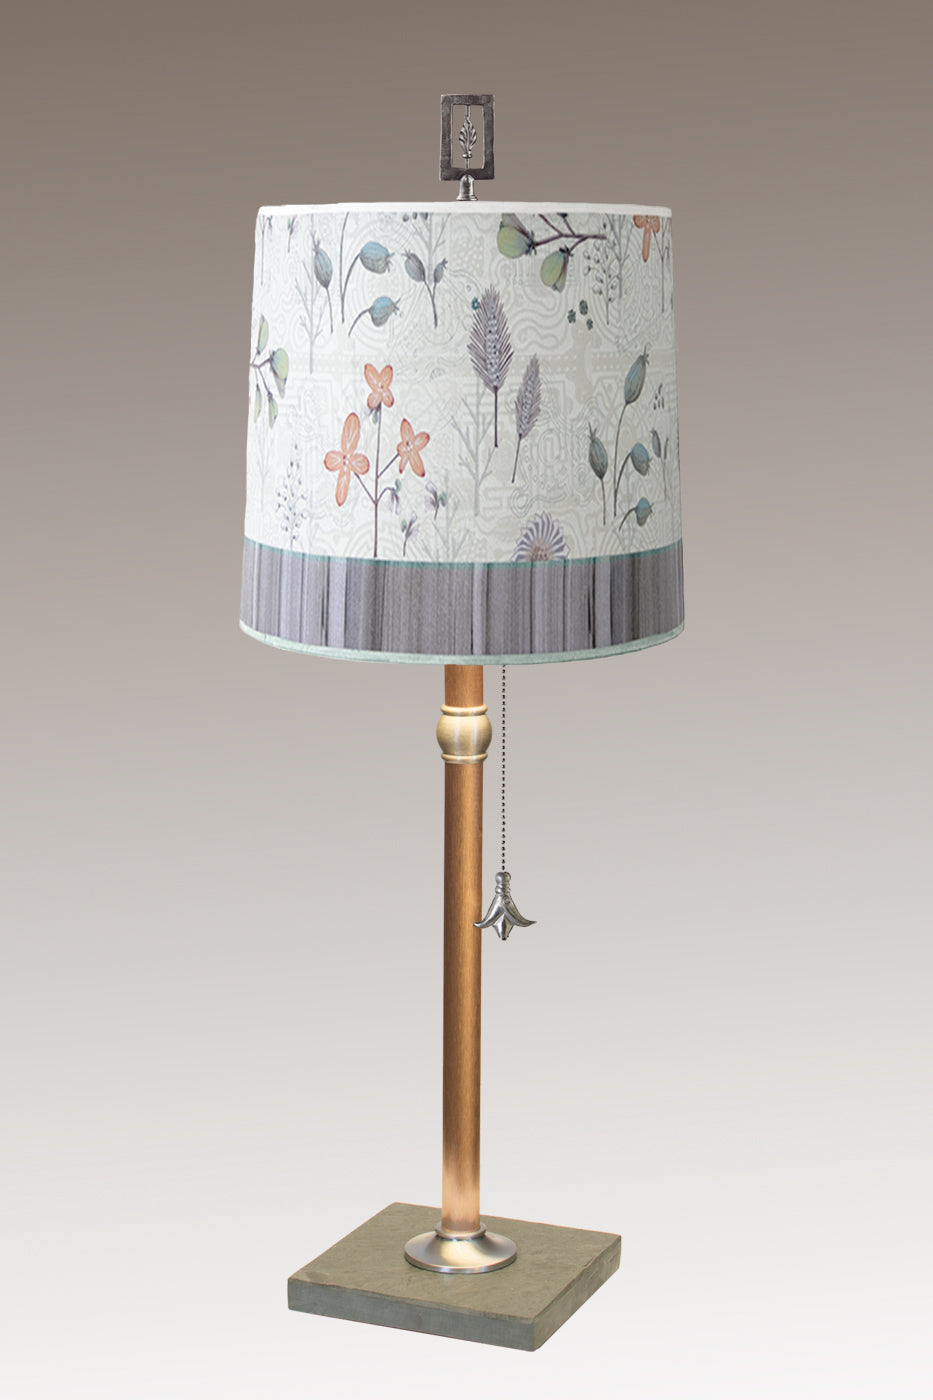 Copper Table Lamp with Medium Drum Shade in Flora & Maze